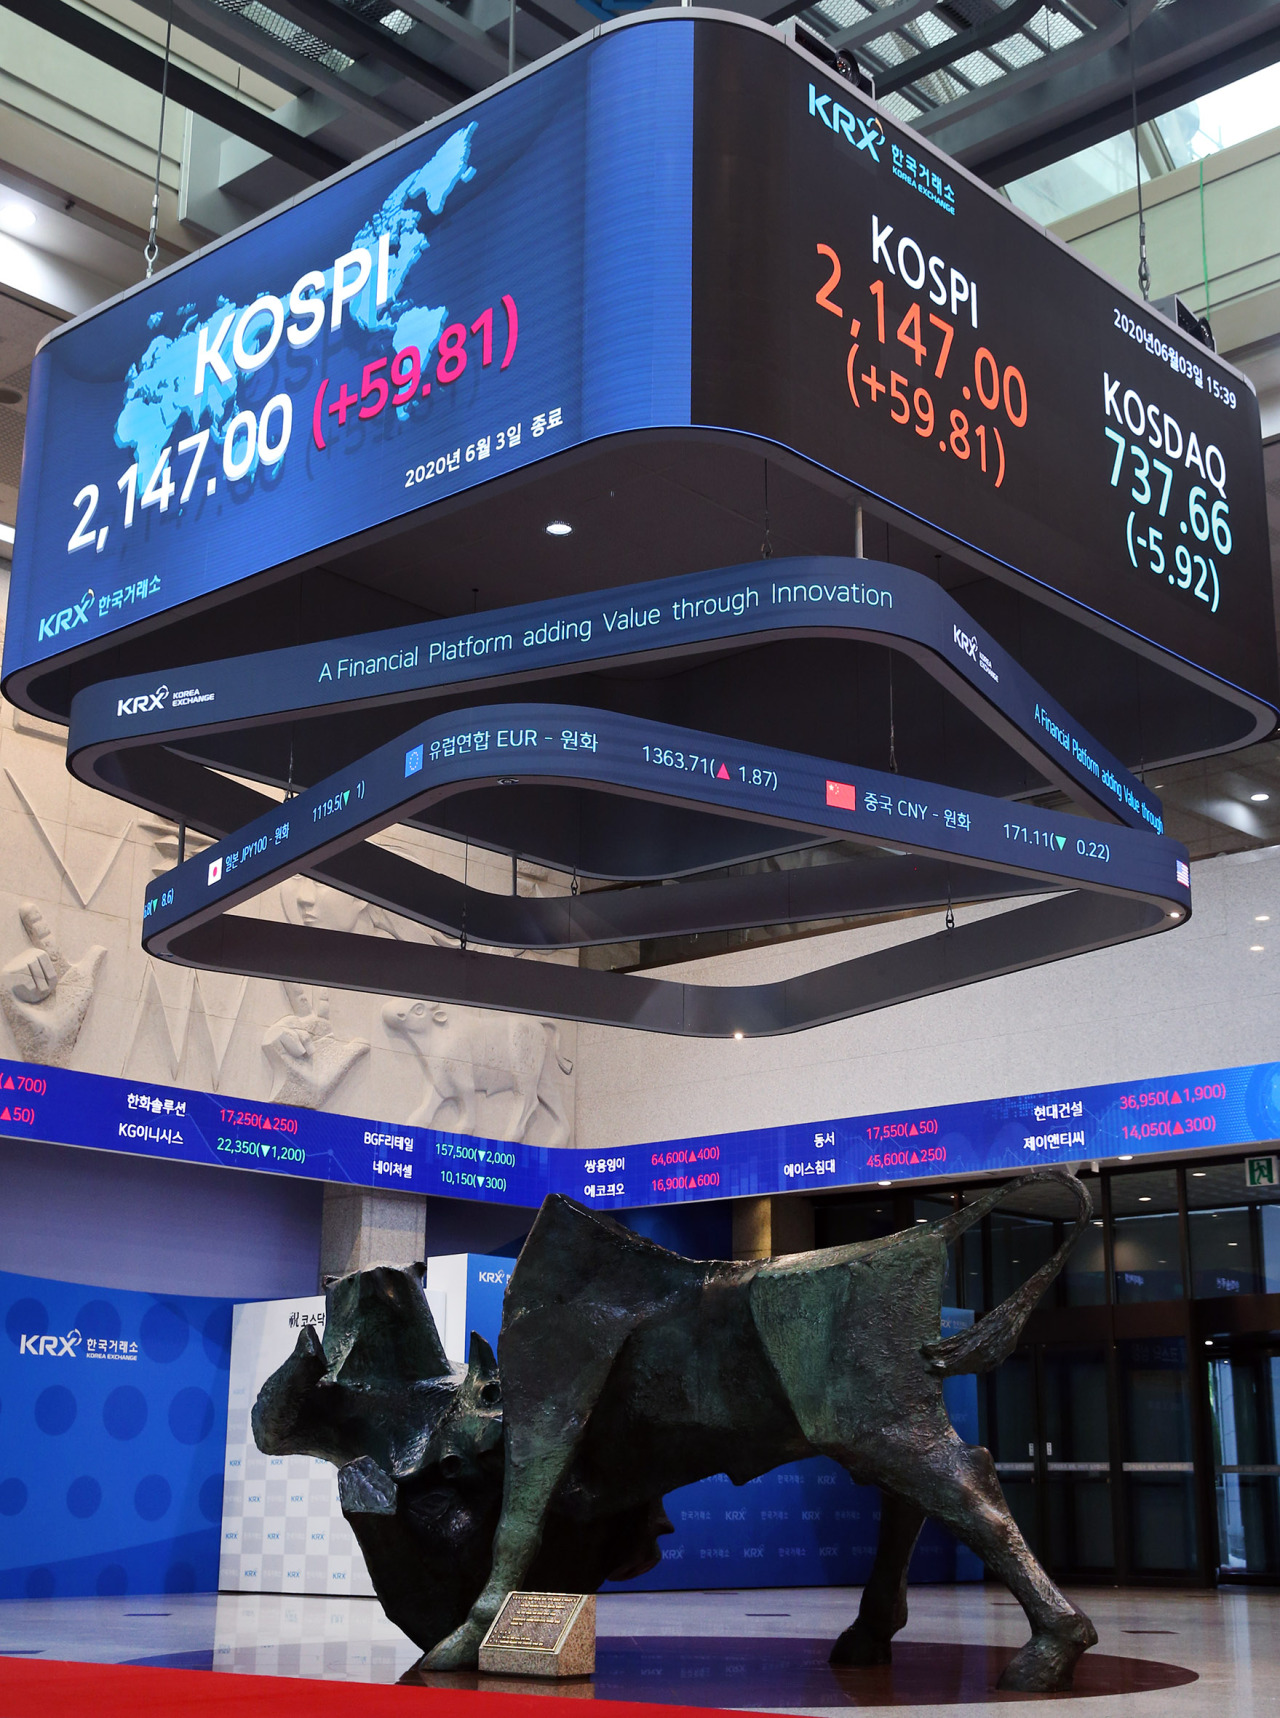 A sign at the Korea Exchange shows the Wednesday's closing prices of two major stock indexes. (KRX)